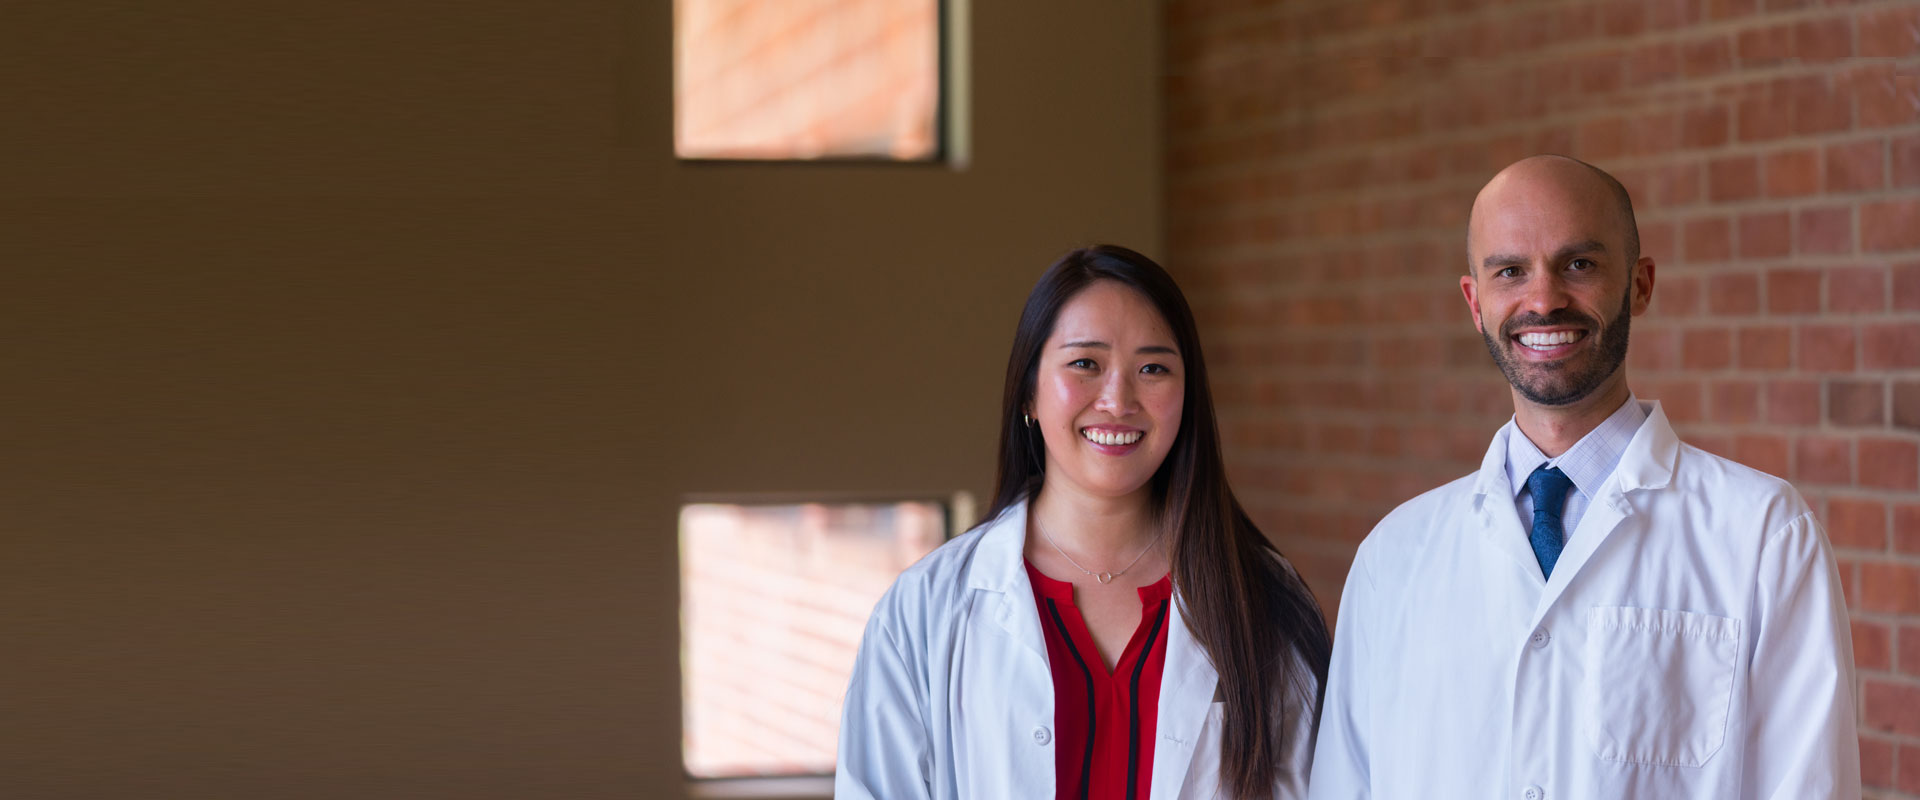 Dr. Sarah Bao and Dr. Ryan Gens of Bay Hills Family Dentistry in Arnold, Maryland